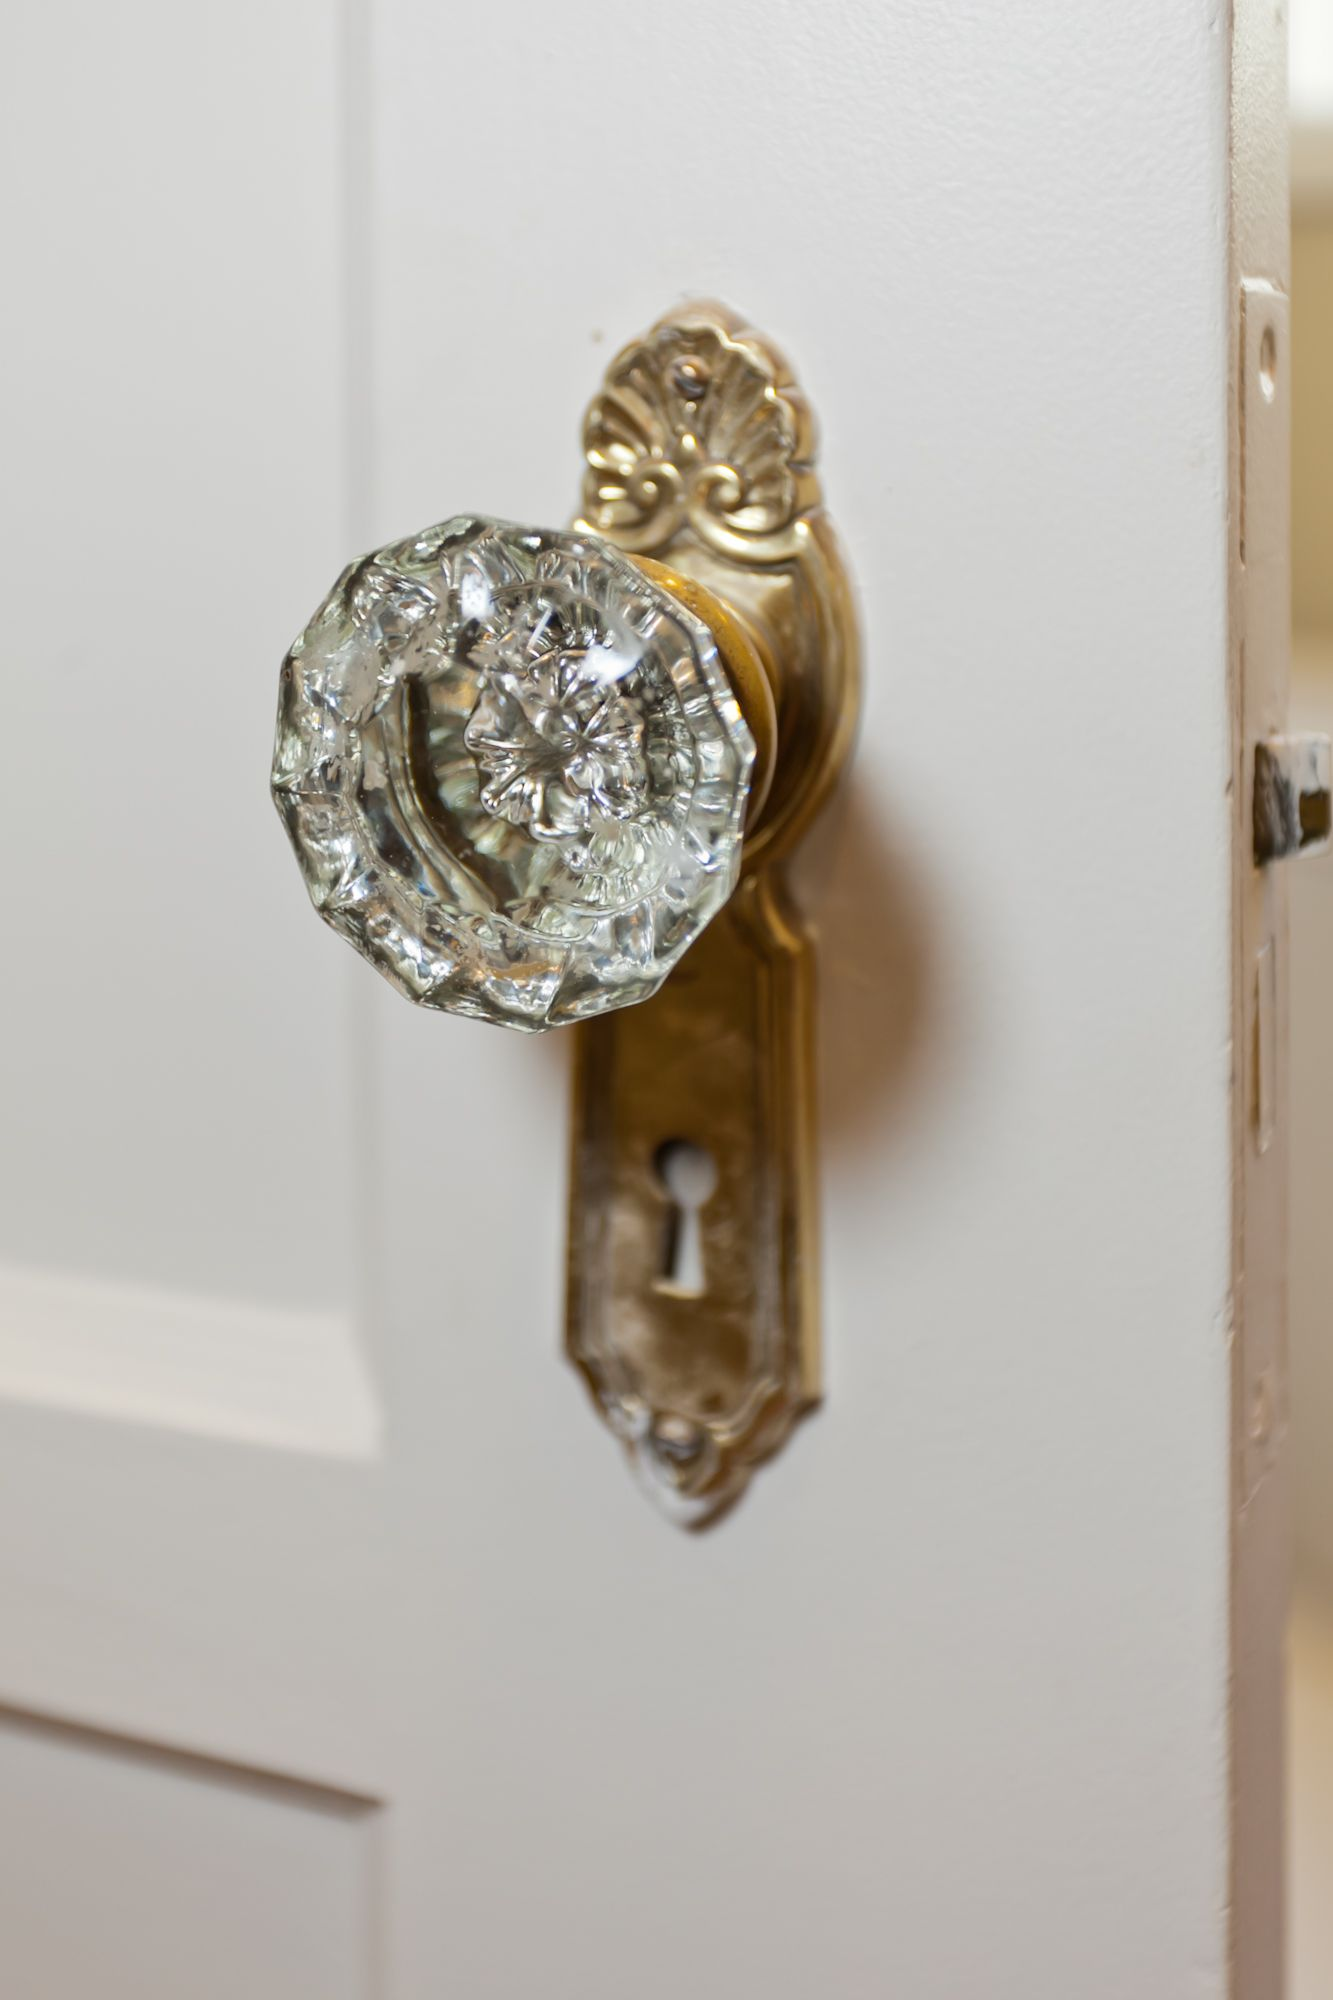 Crystal door knob...love! More & Things I love! | Pinterest | Crystal door knobs Door knobs and Doors